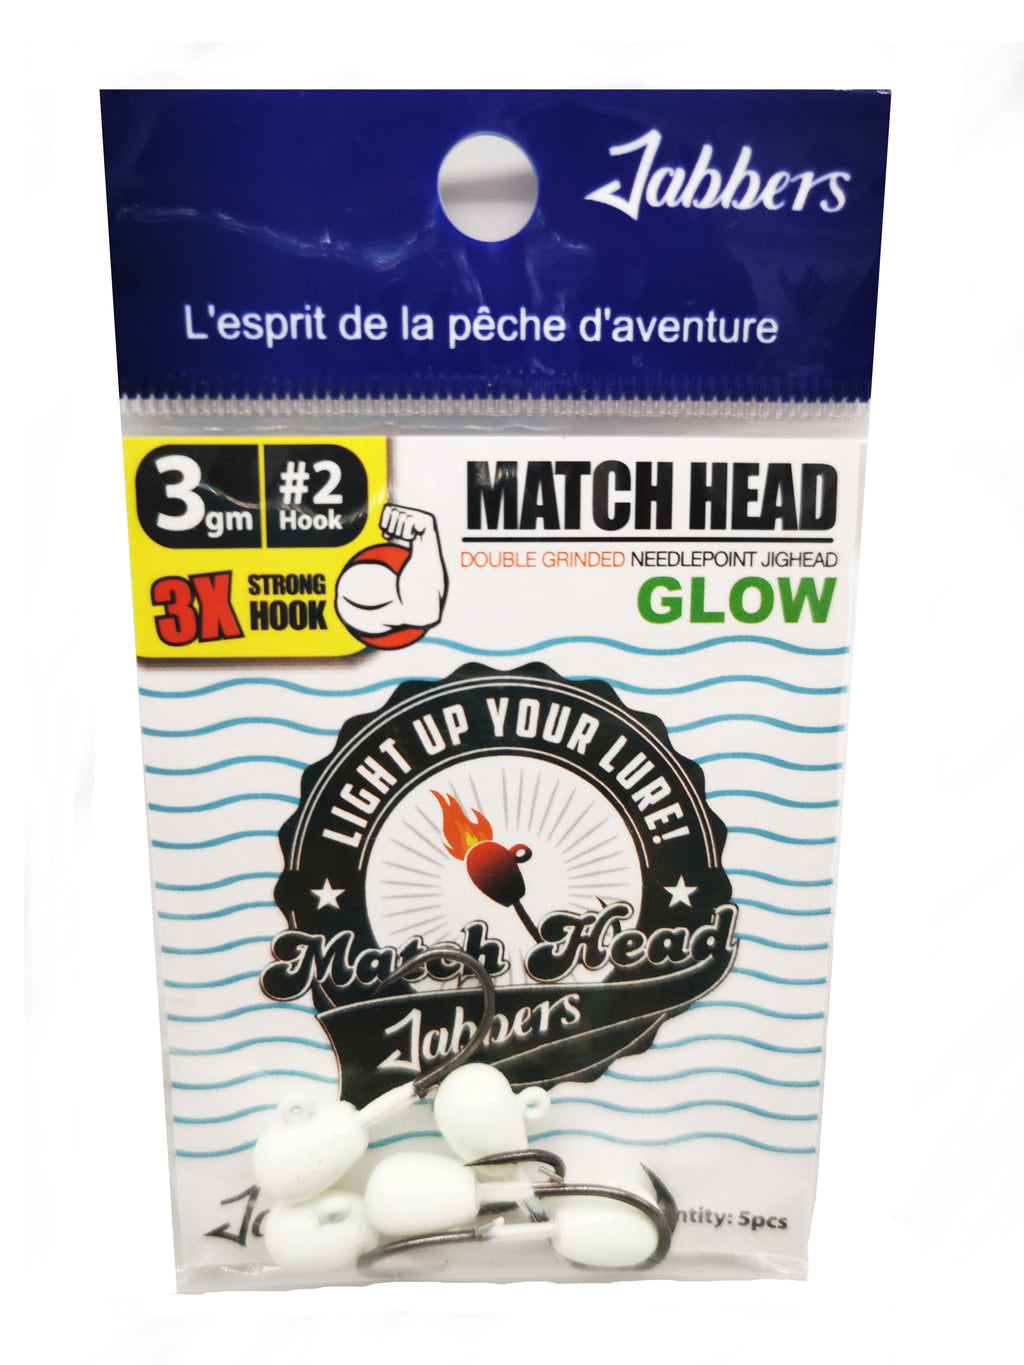 Jabbers Match Head glow